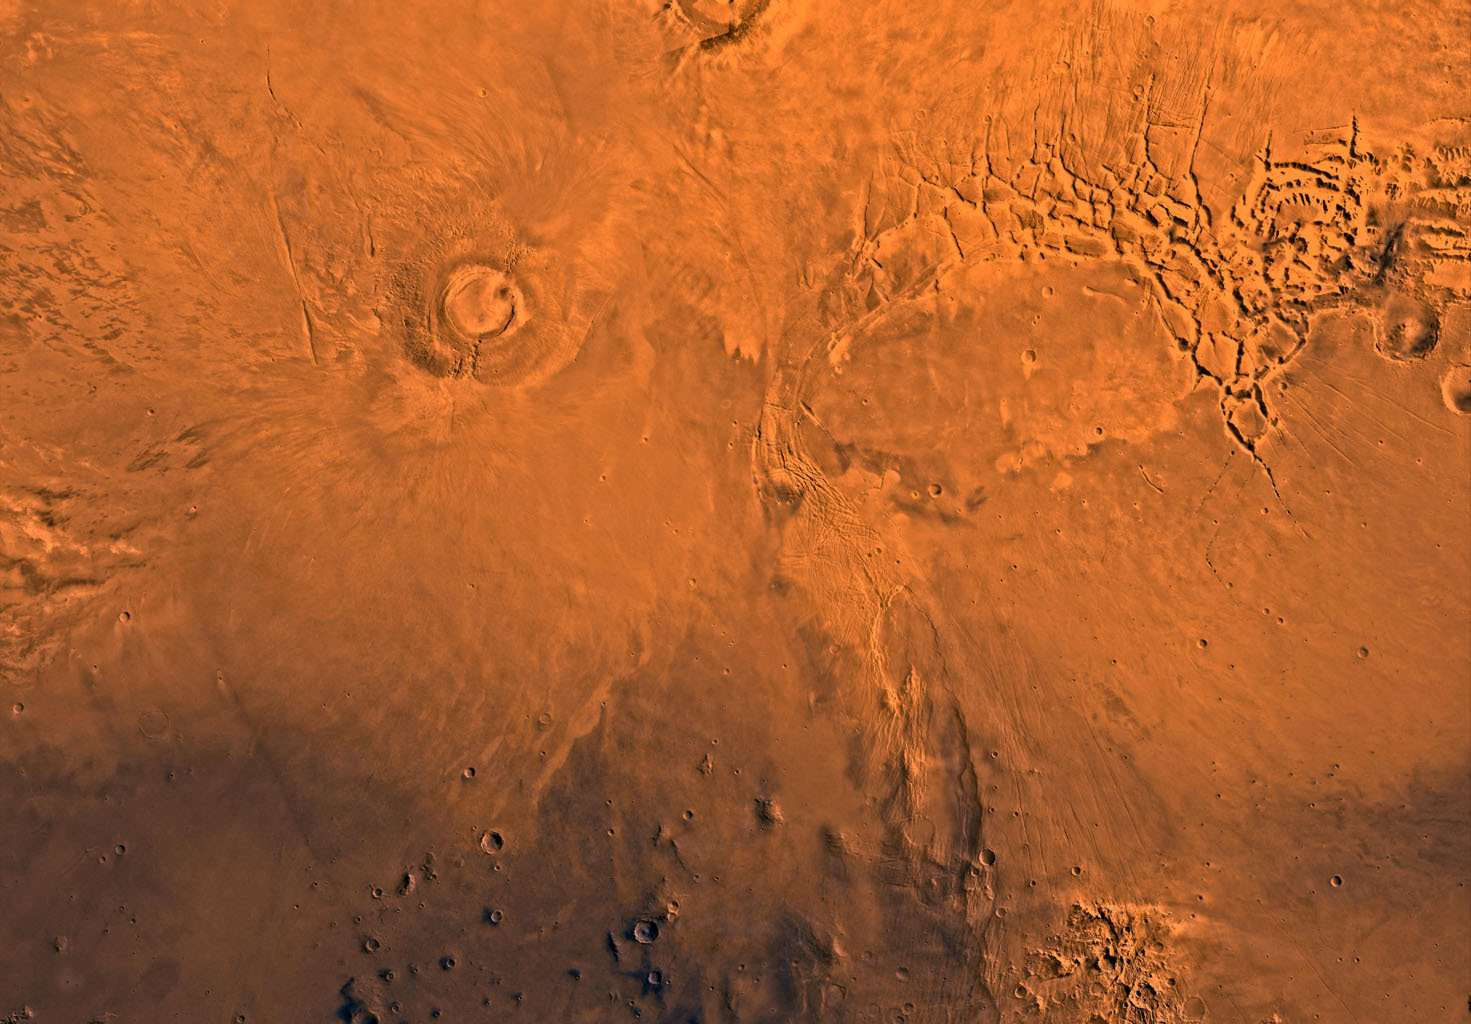 Mars volcano, dinosaurs extinct at the same time